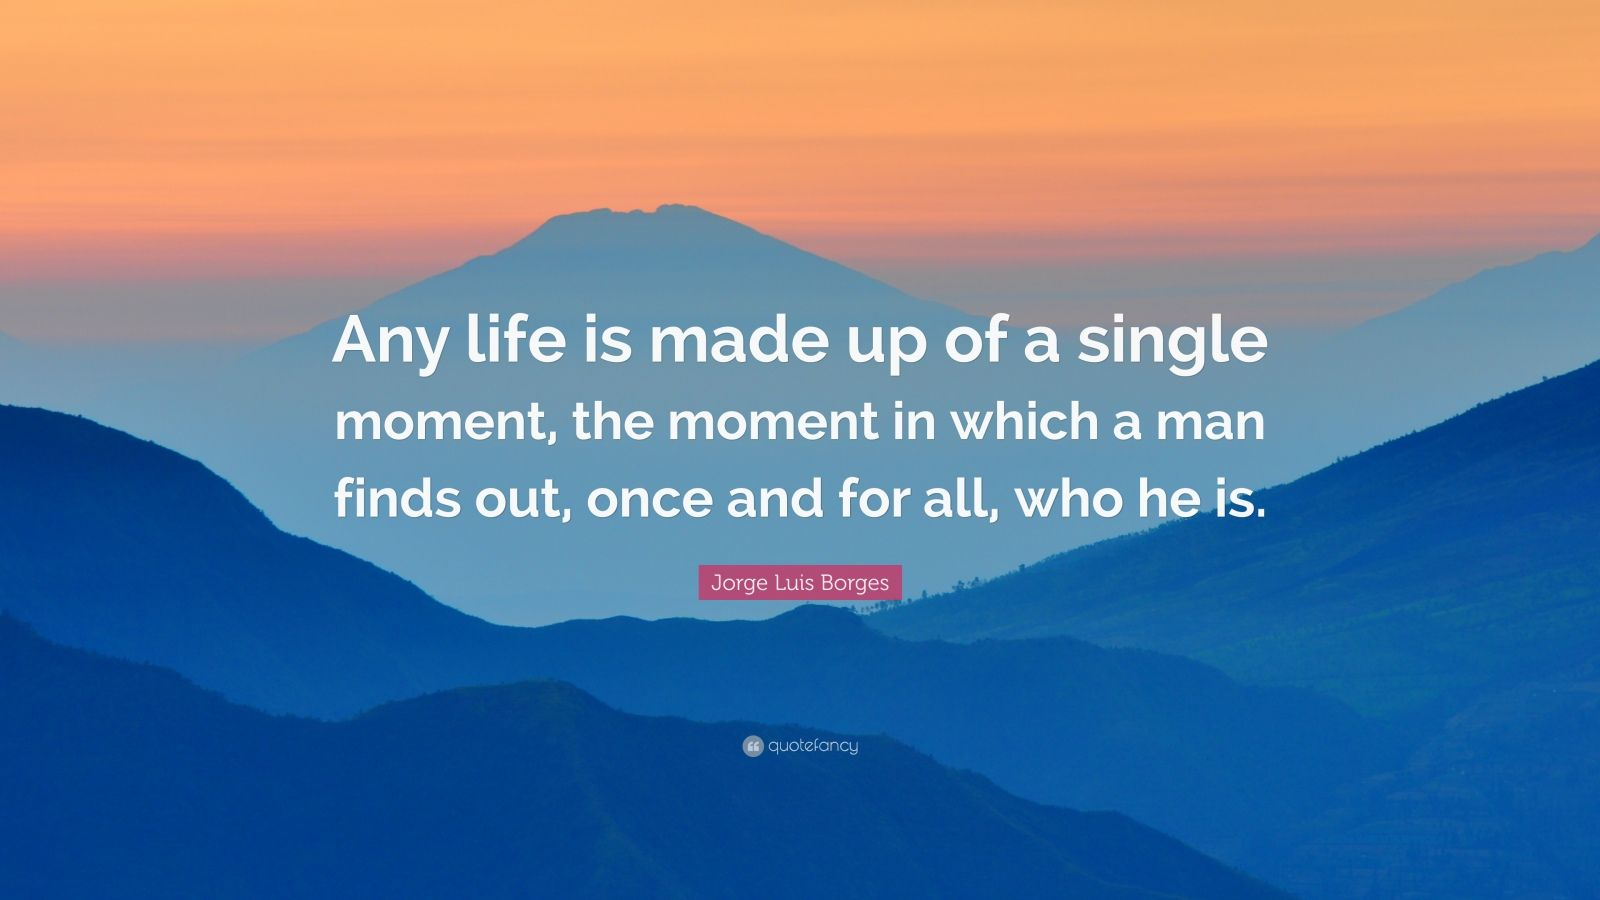 """Jorge Luis Borges Quote: """"Any life is made up of a single moment, the moment in which a man finds out, once and for all, who he is."""""""